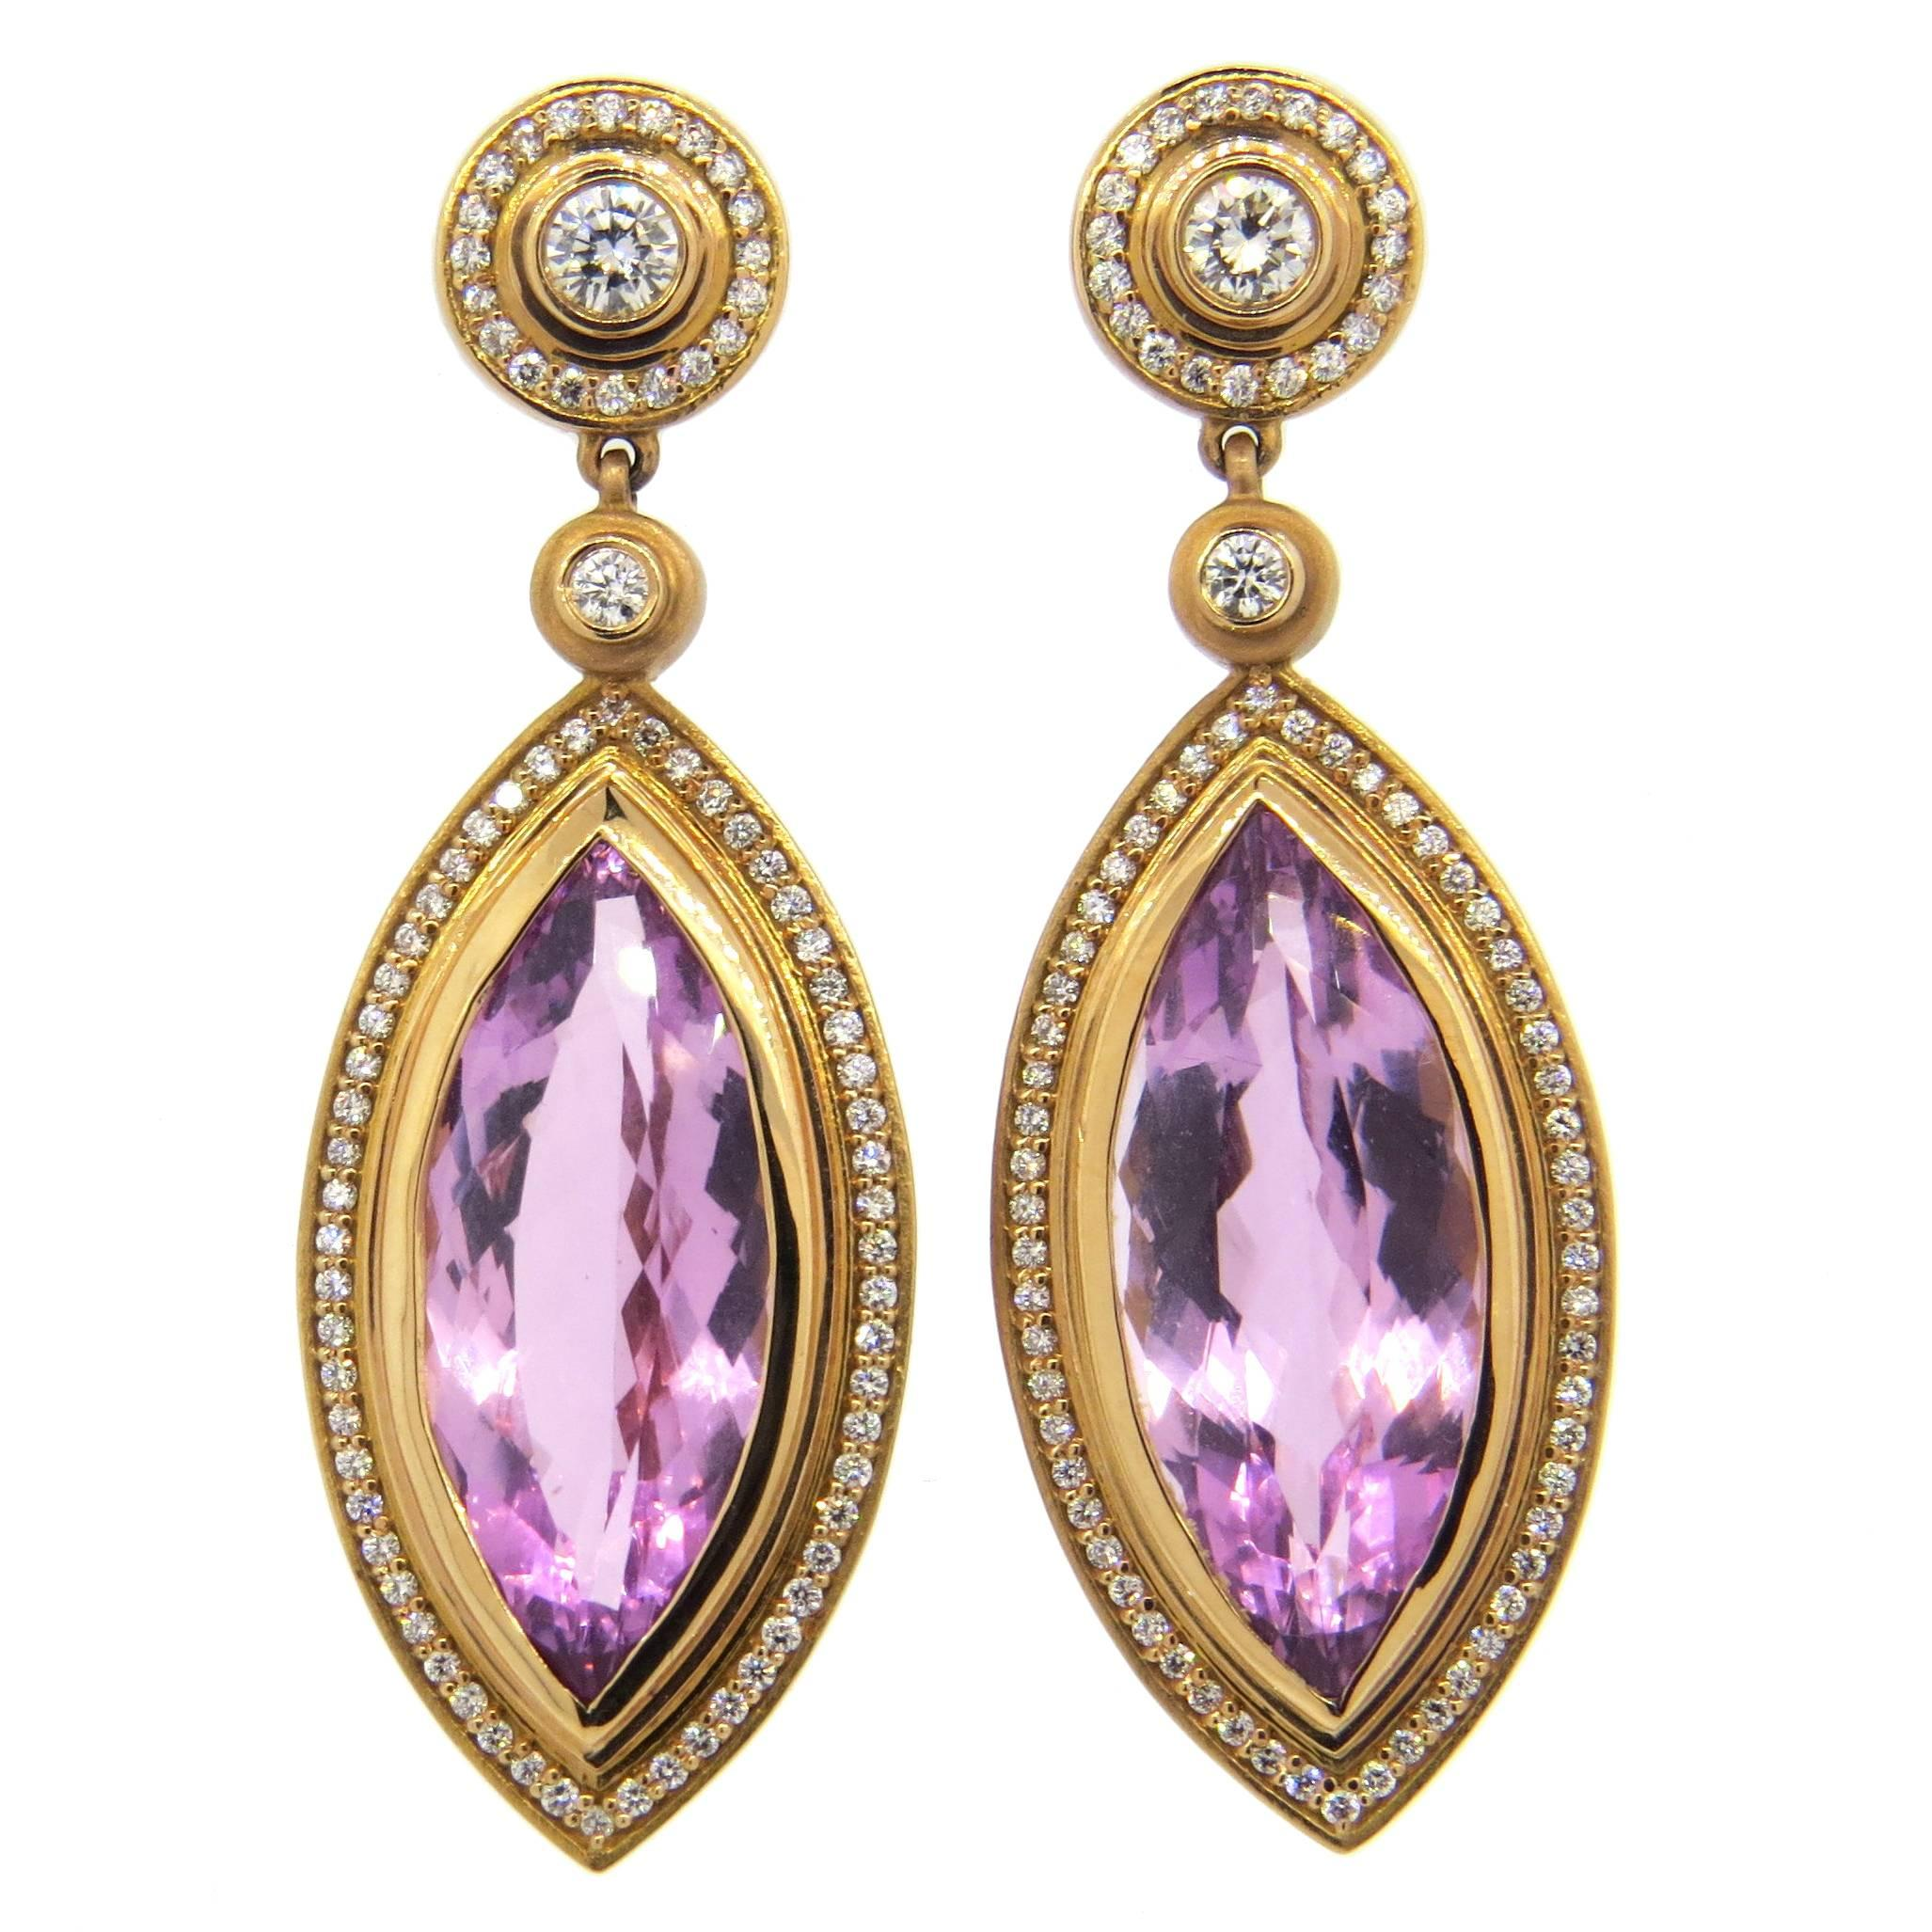 portfolio diamonds with kunzite o gold earrings bernard delettrez and drop pav